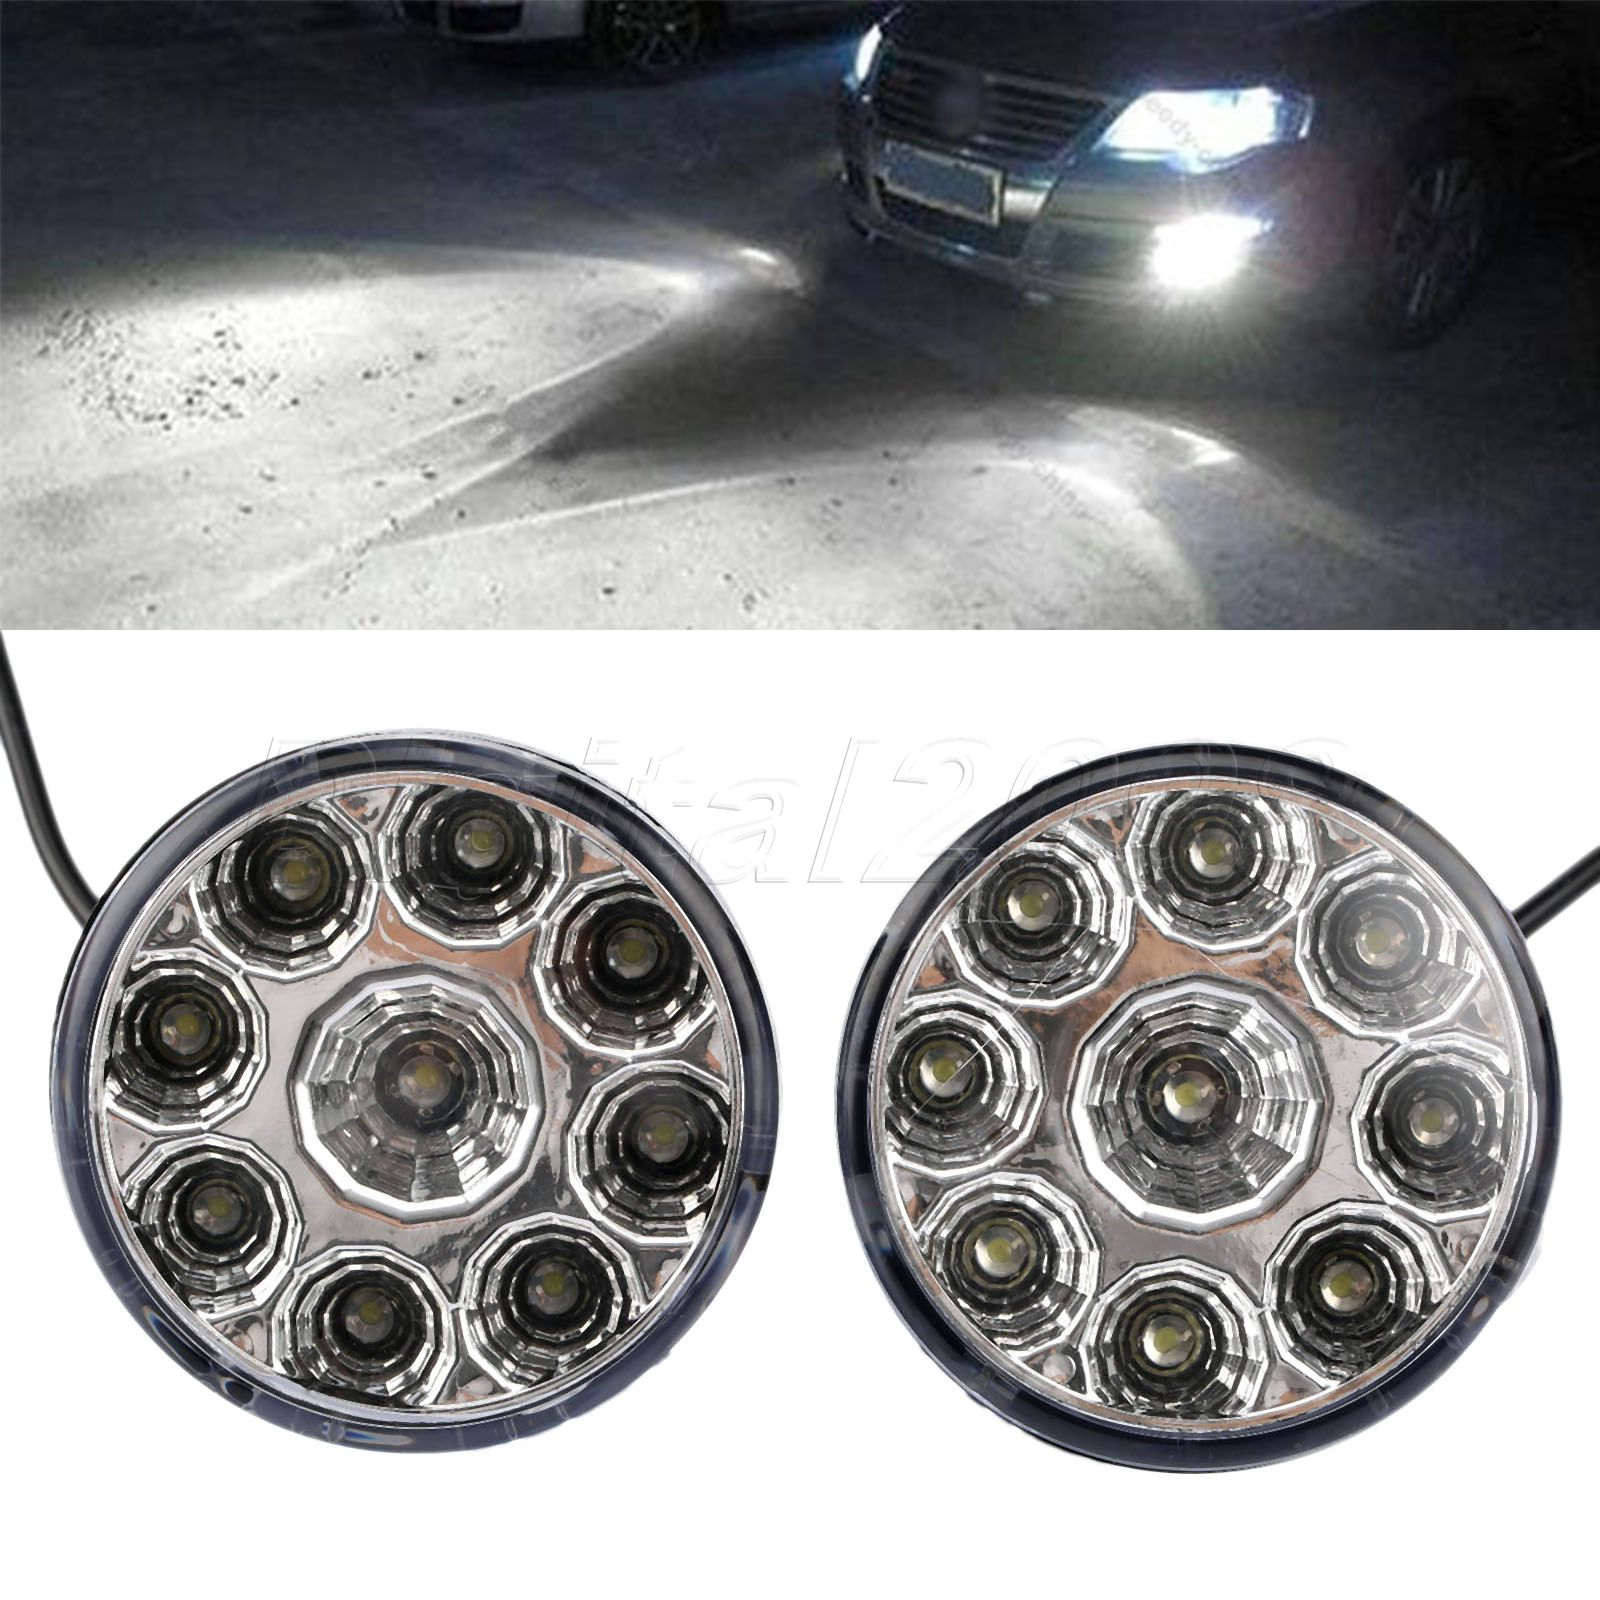 Yetaha 2pcs DRL Round Daytime Running Light Car Fog Lamp Day Driving Lamp 12v 9 LED Auto Headlight White Fog Light High Quality 1 pair metal shell eagle eye hawkeye 6 led car white drl daytime running light driving fog daylight day safety lamp waterproof